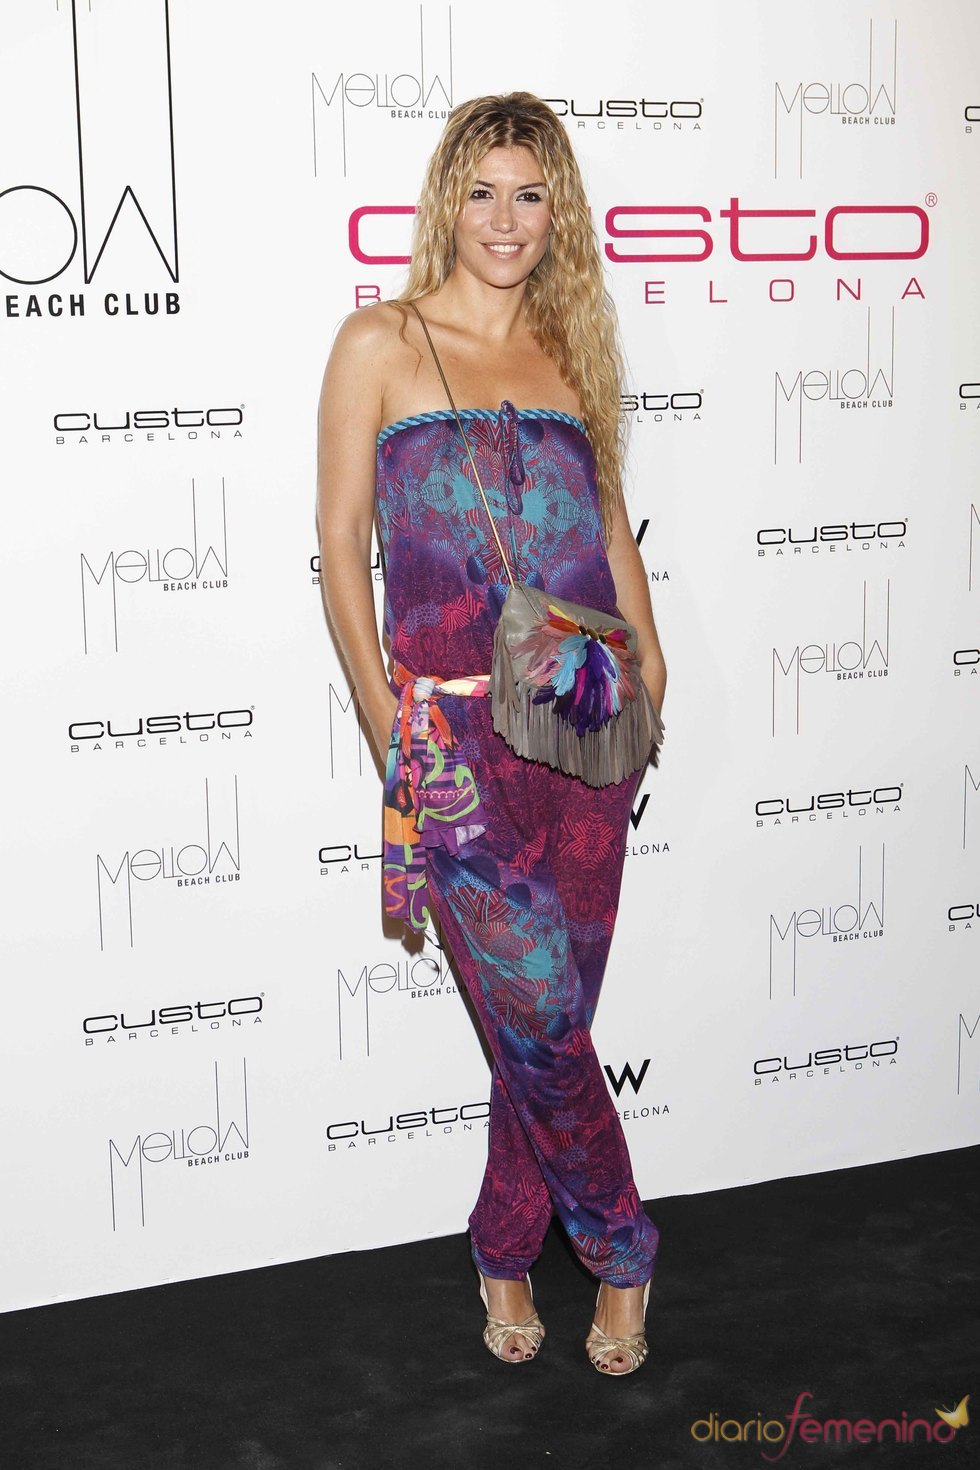 Raquel Meroño en Mellow Beach Club by Custo